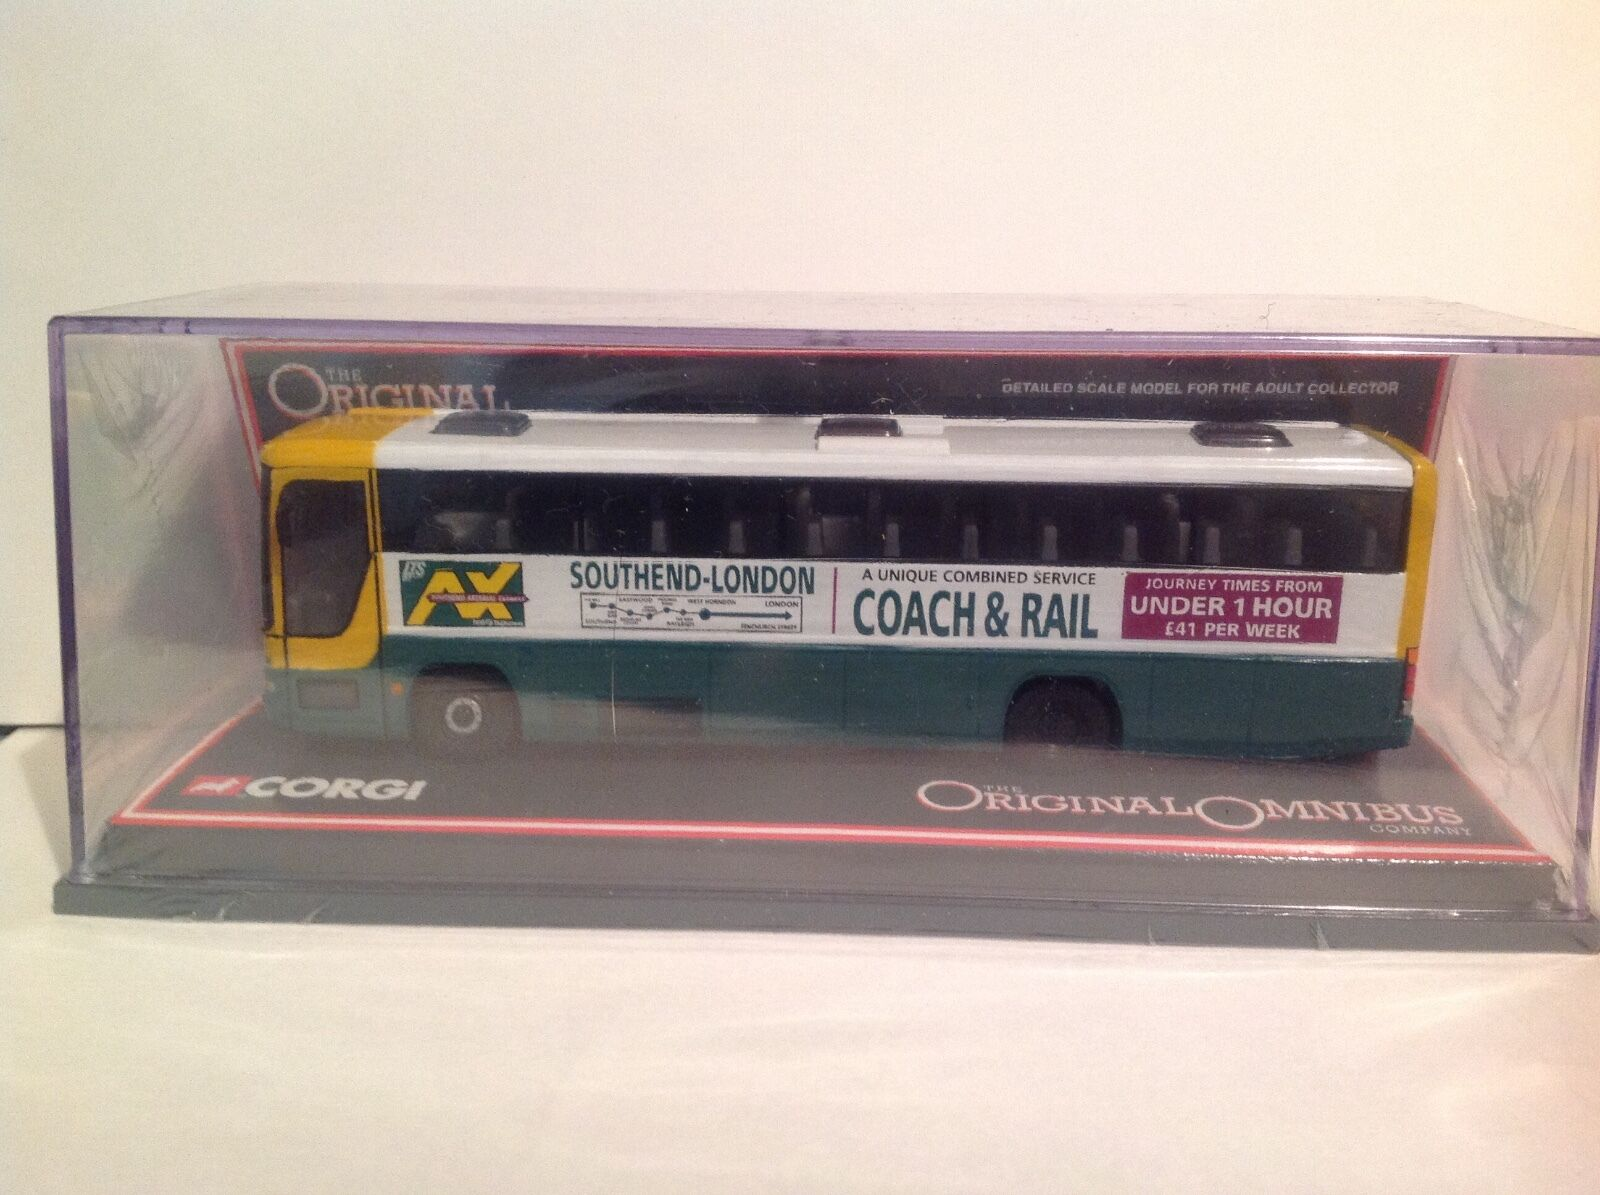 OM43314 Plaxton Premiere Southend Arterial Express LTD Edition No. 0002 of 3100